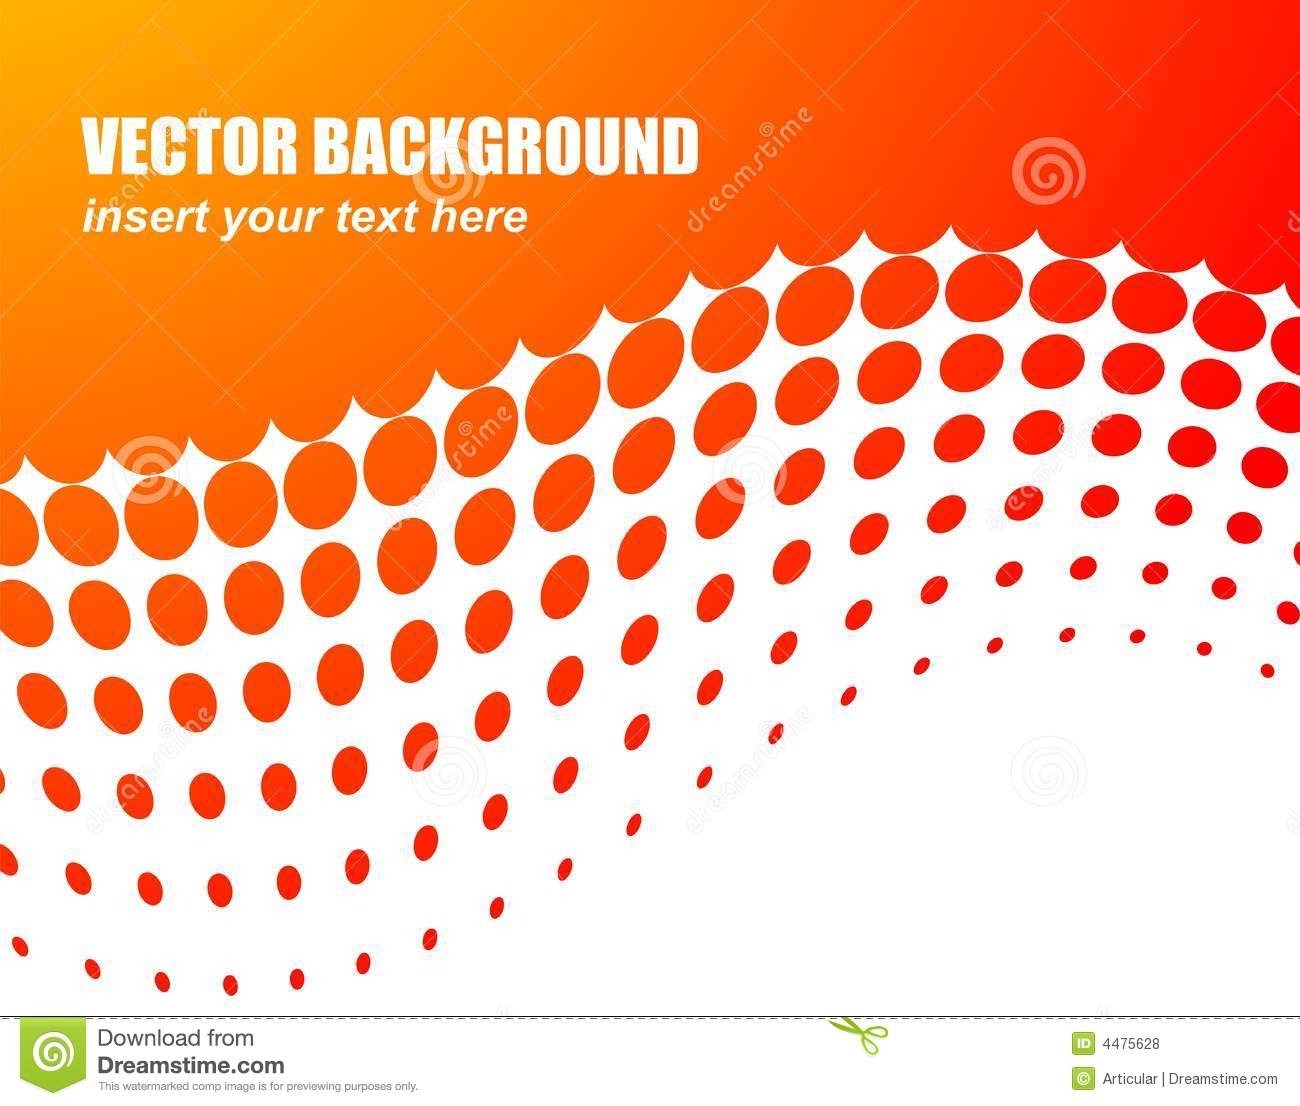 Abstract vector background with orange circle